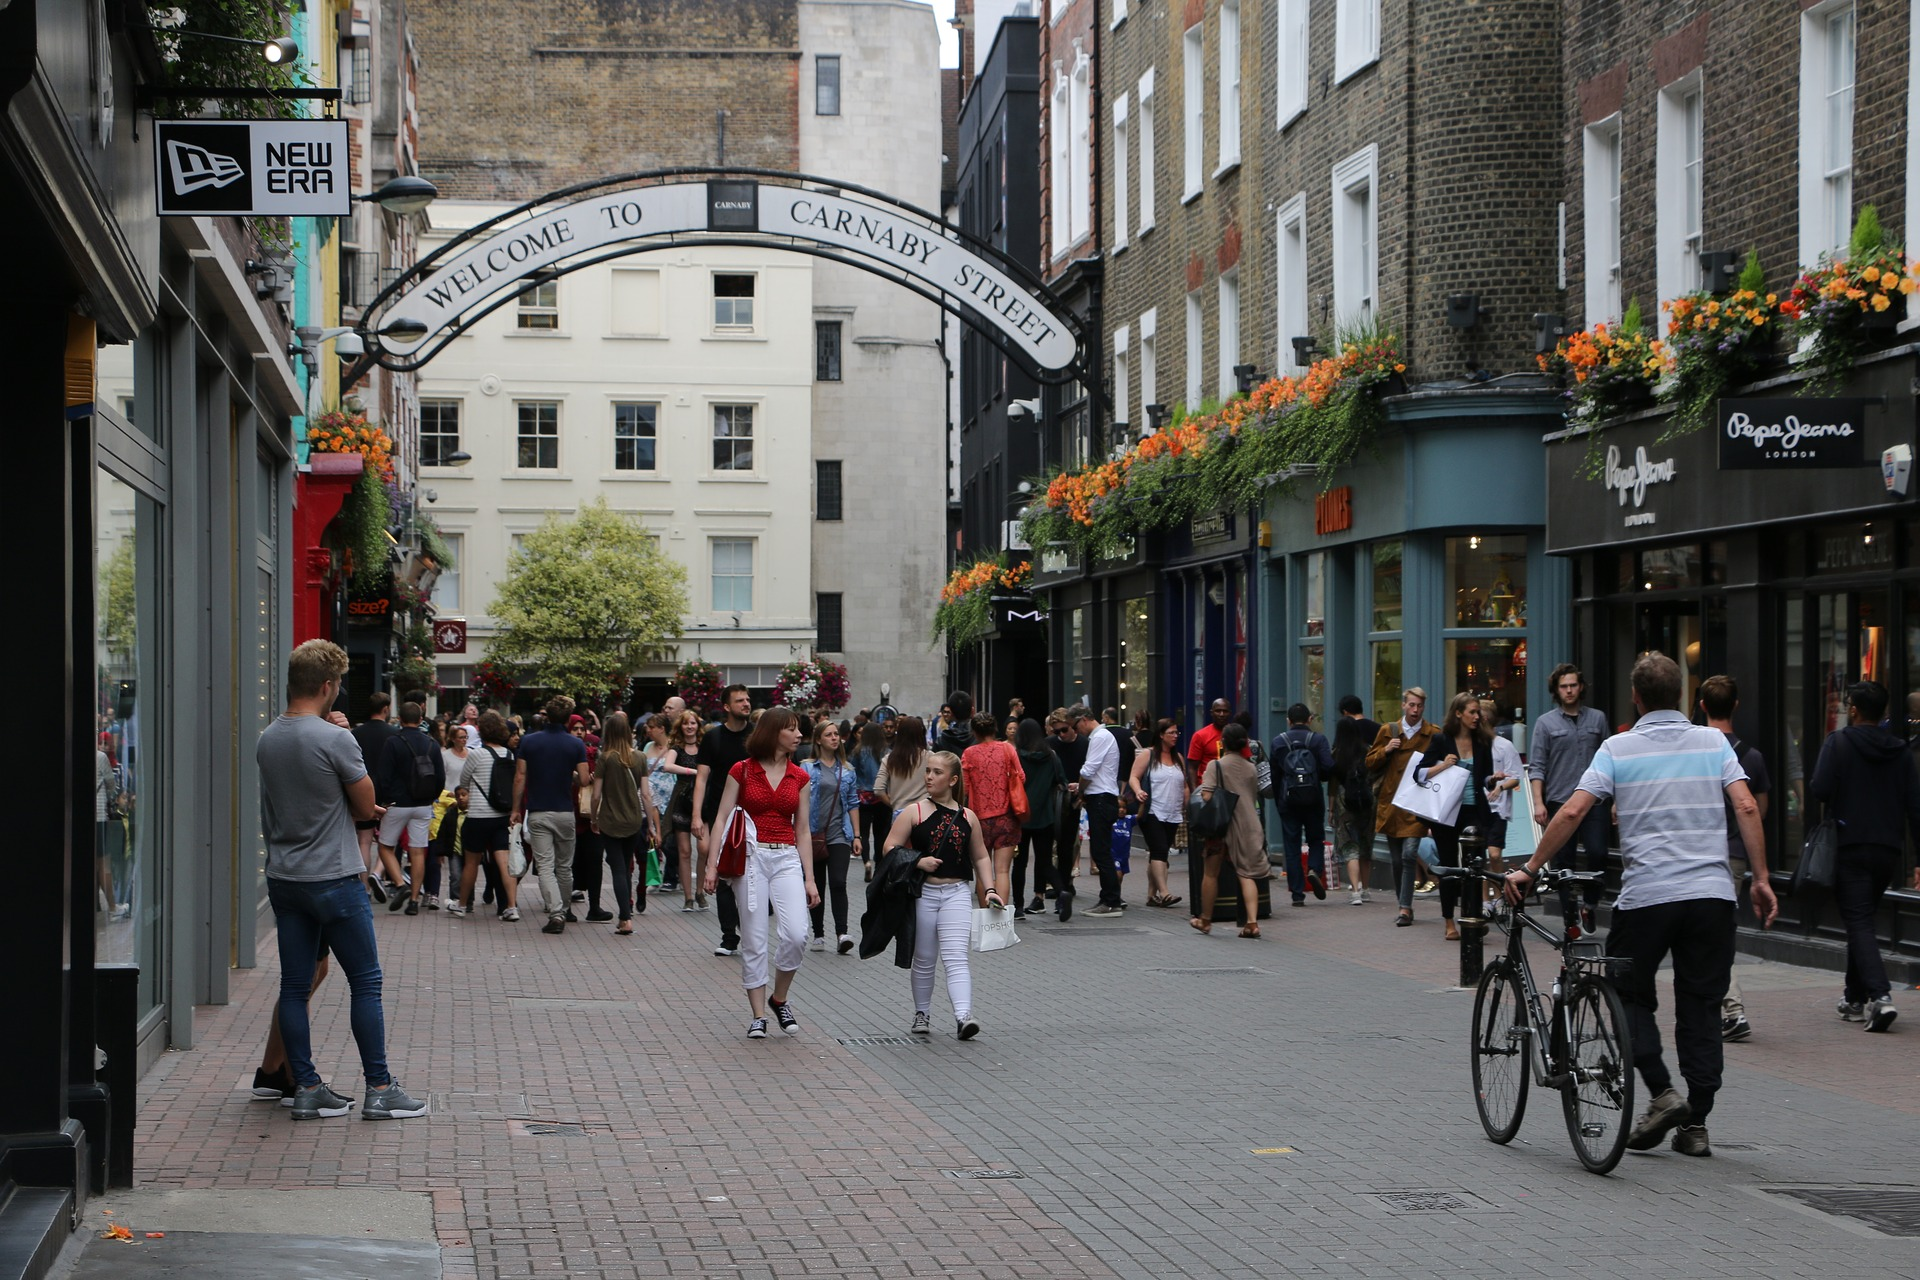 Revitalising the high street